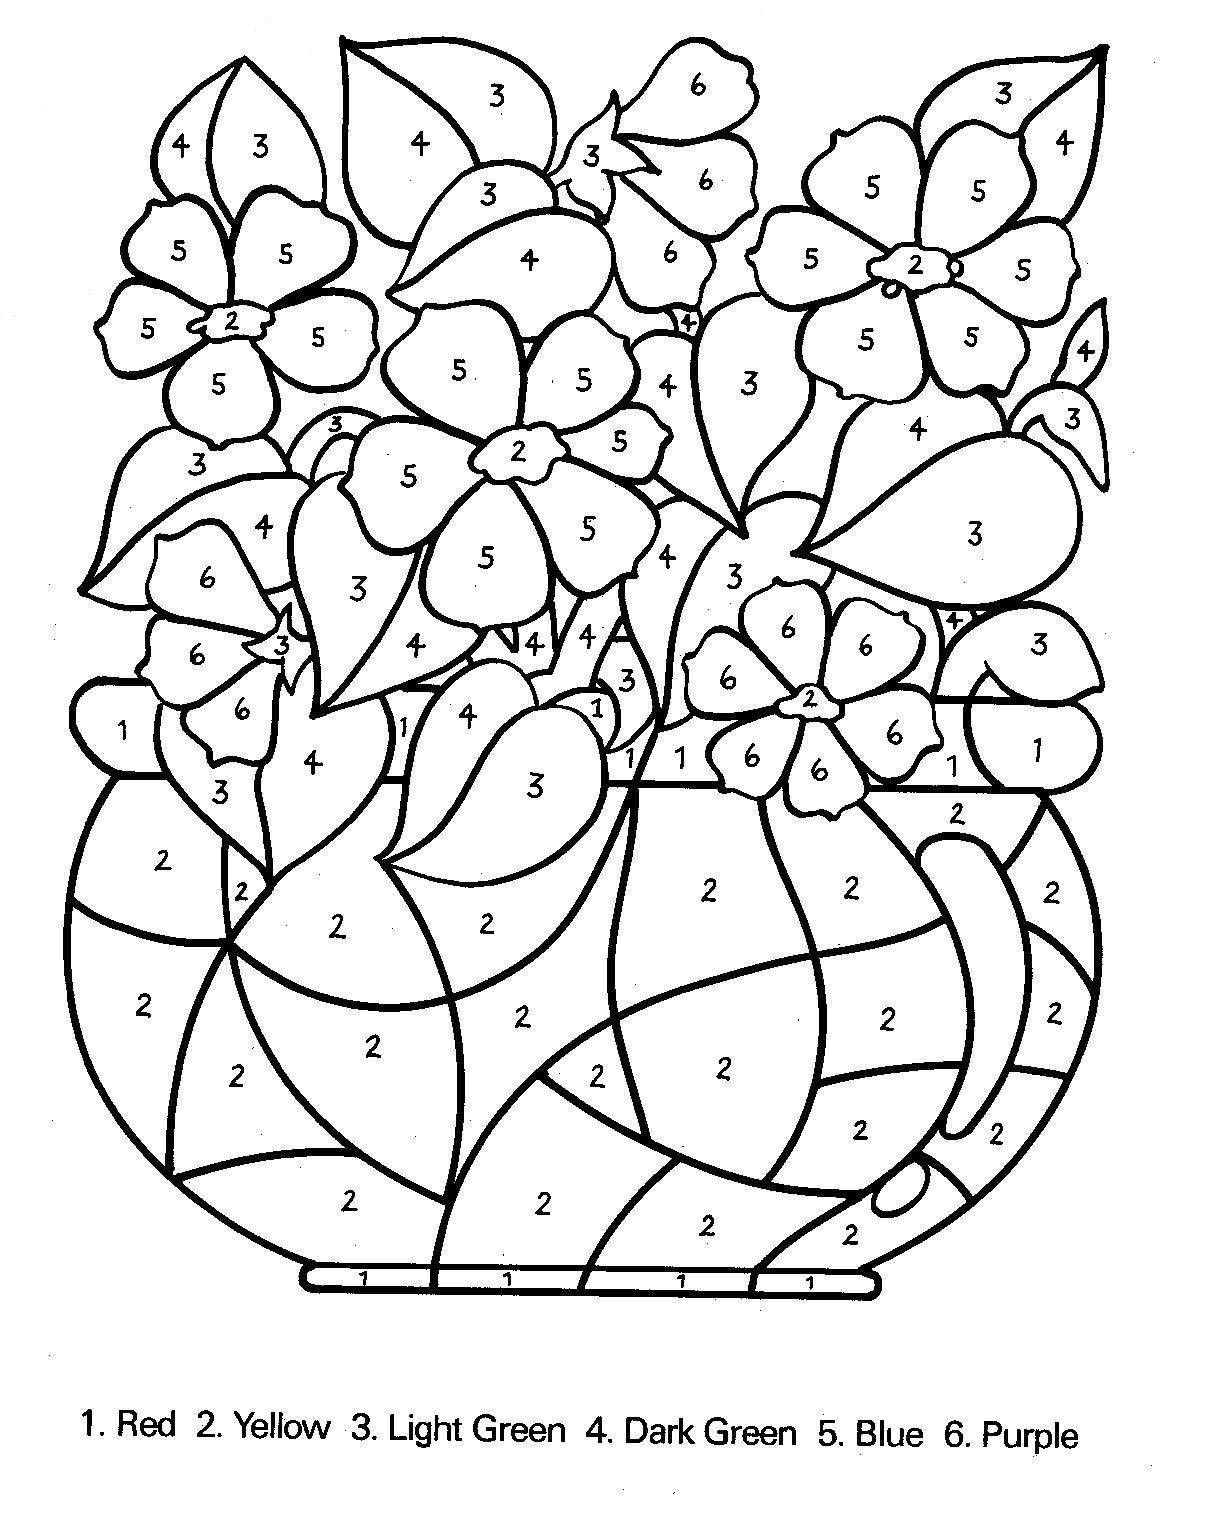 Coloring pages by numbers for kids - Color By Number Flowers Adults Coloring Pages Printable And Coloring Book To Print For Free Find More Coloring Pages Online For Kids And Adults Of Color By